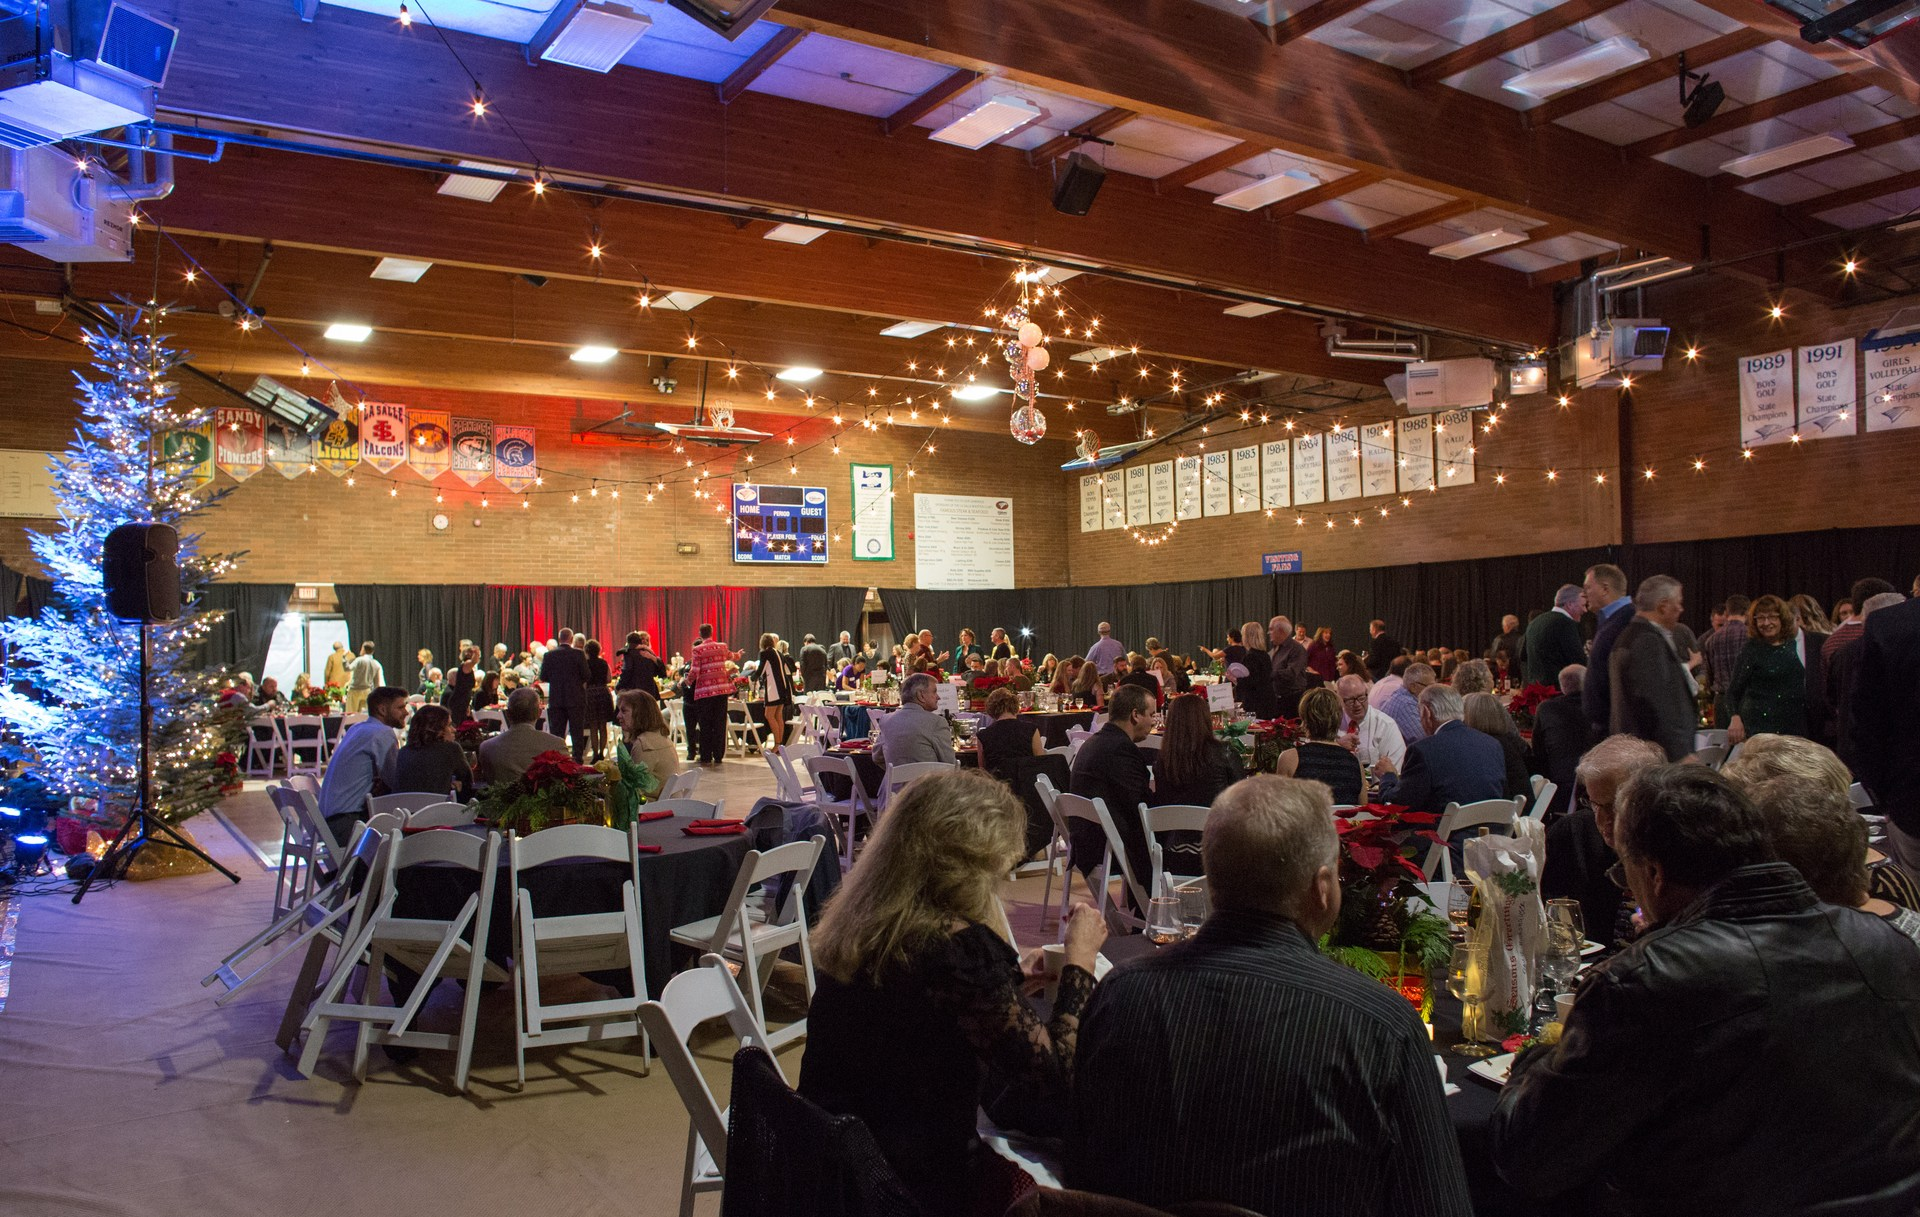 Banquet hall full of people sitting at tables.